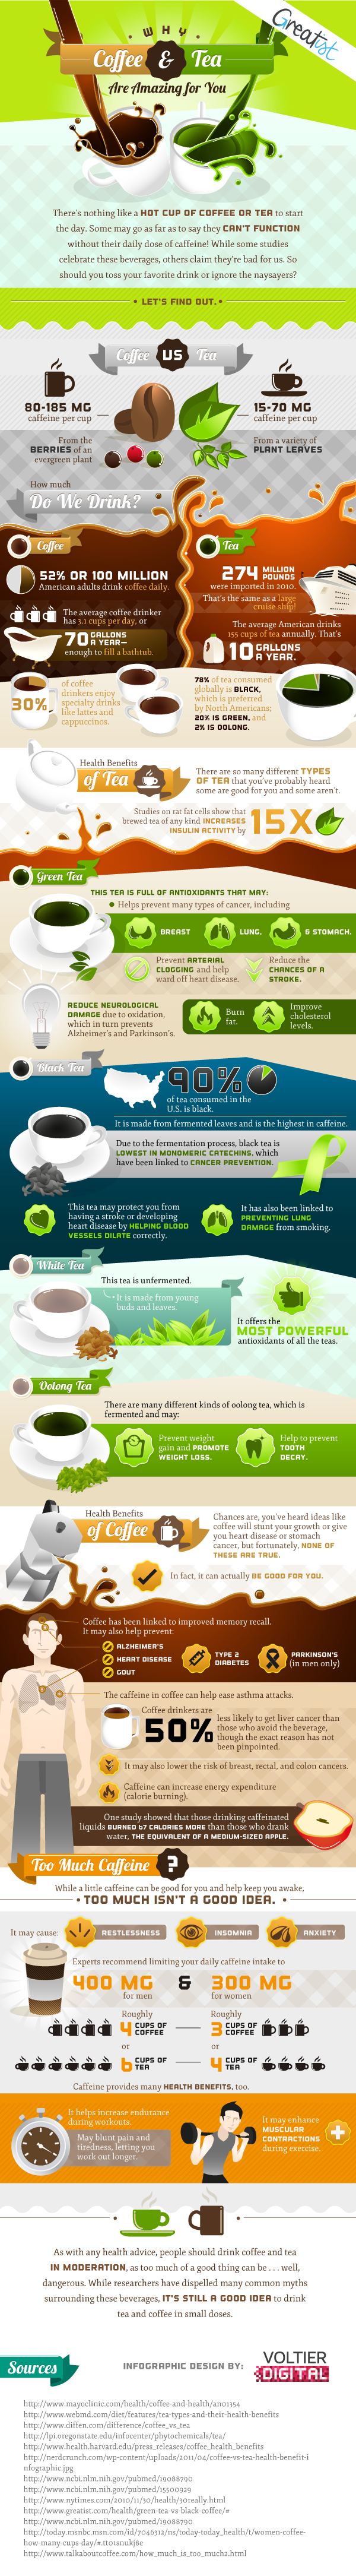 Why Coffee And Tea Are Good For Your Health Infographic